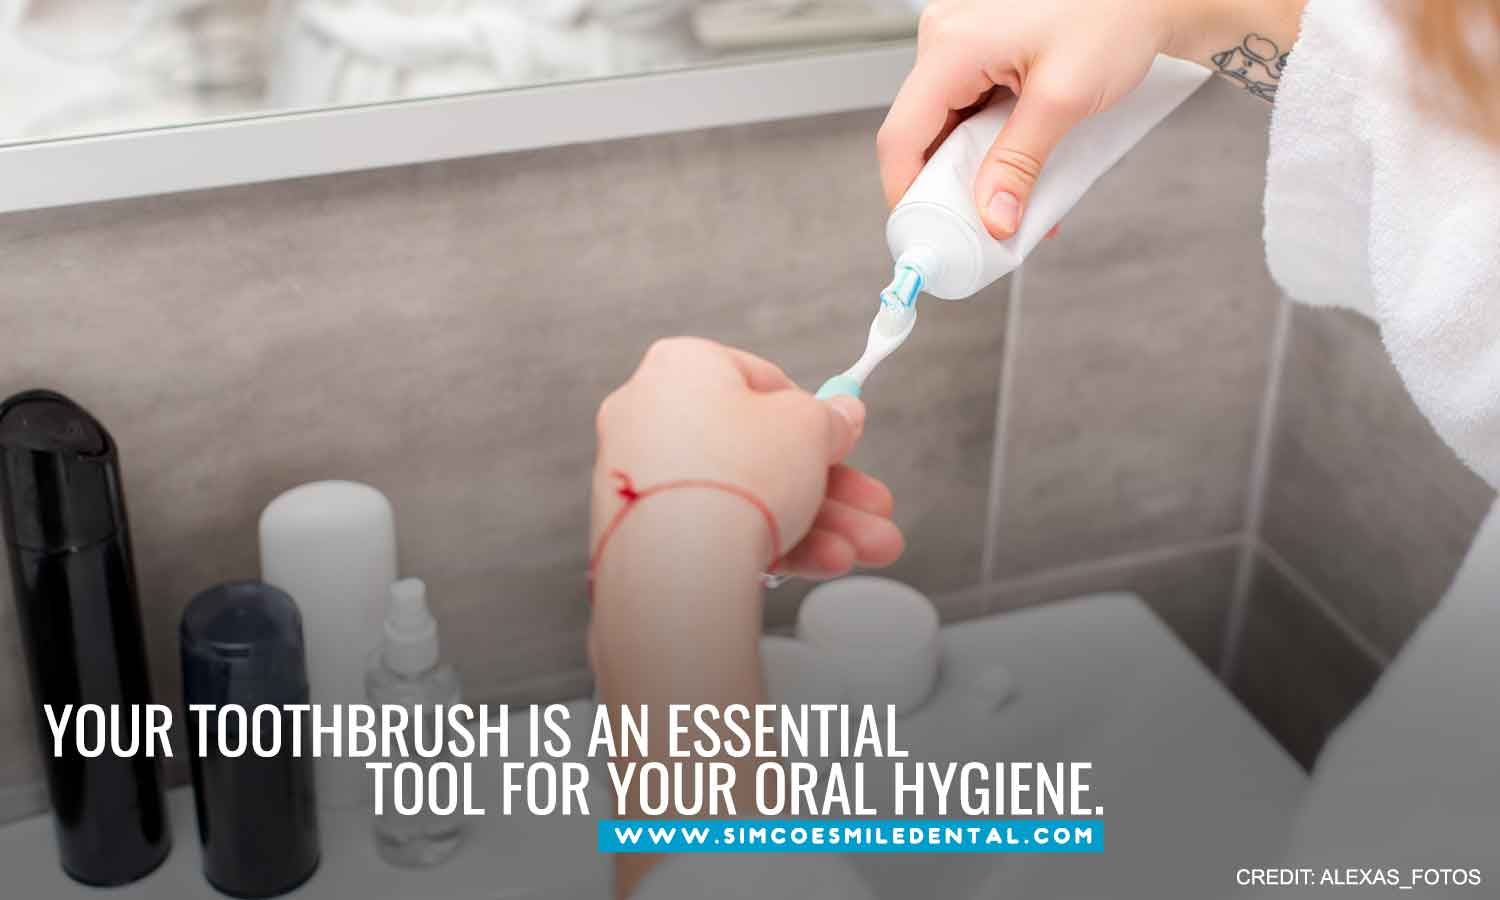 Your-toothbrush-is-an-essential-tool-for-your-oral-hygiene How to Help Your Toothbrush Take Care of Your Teeth